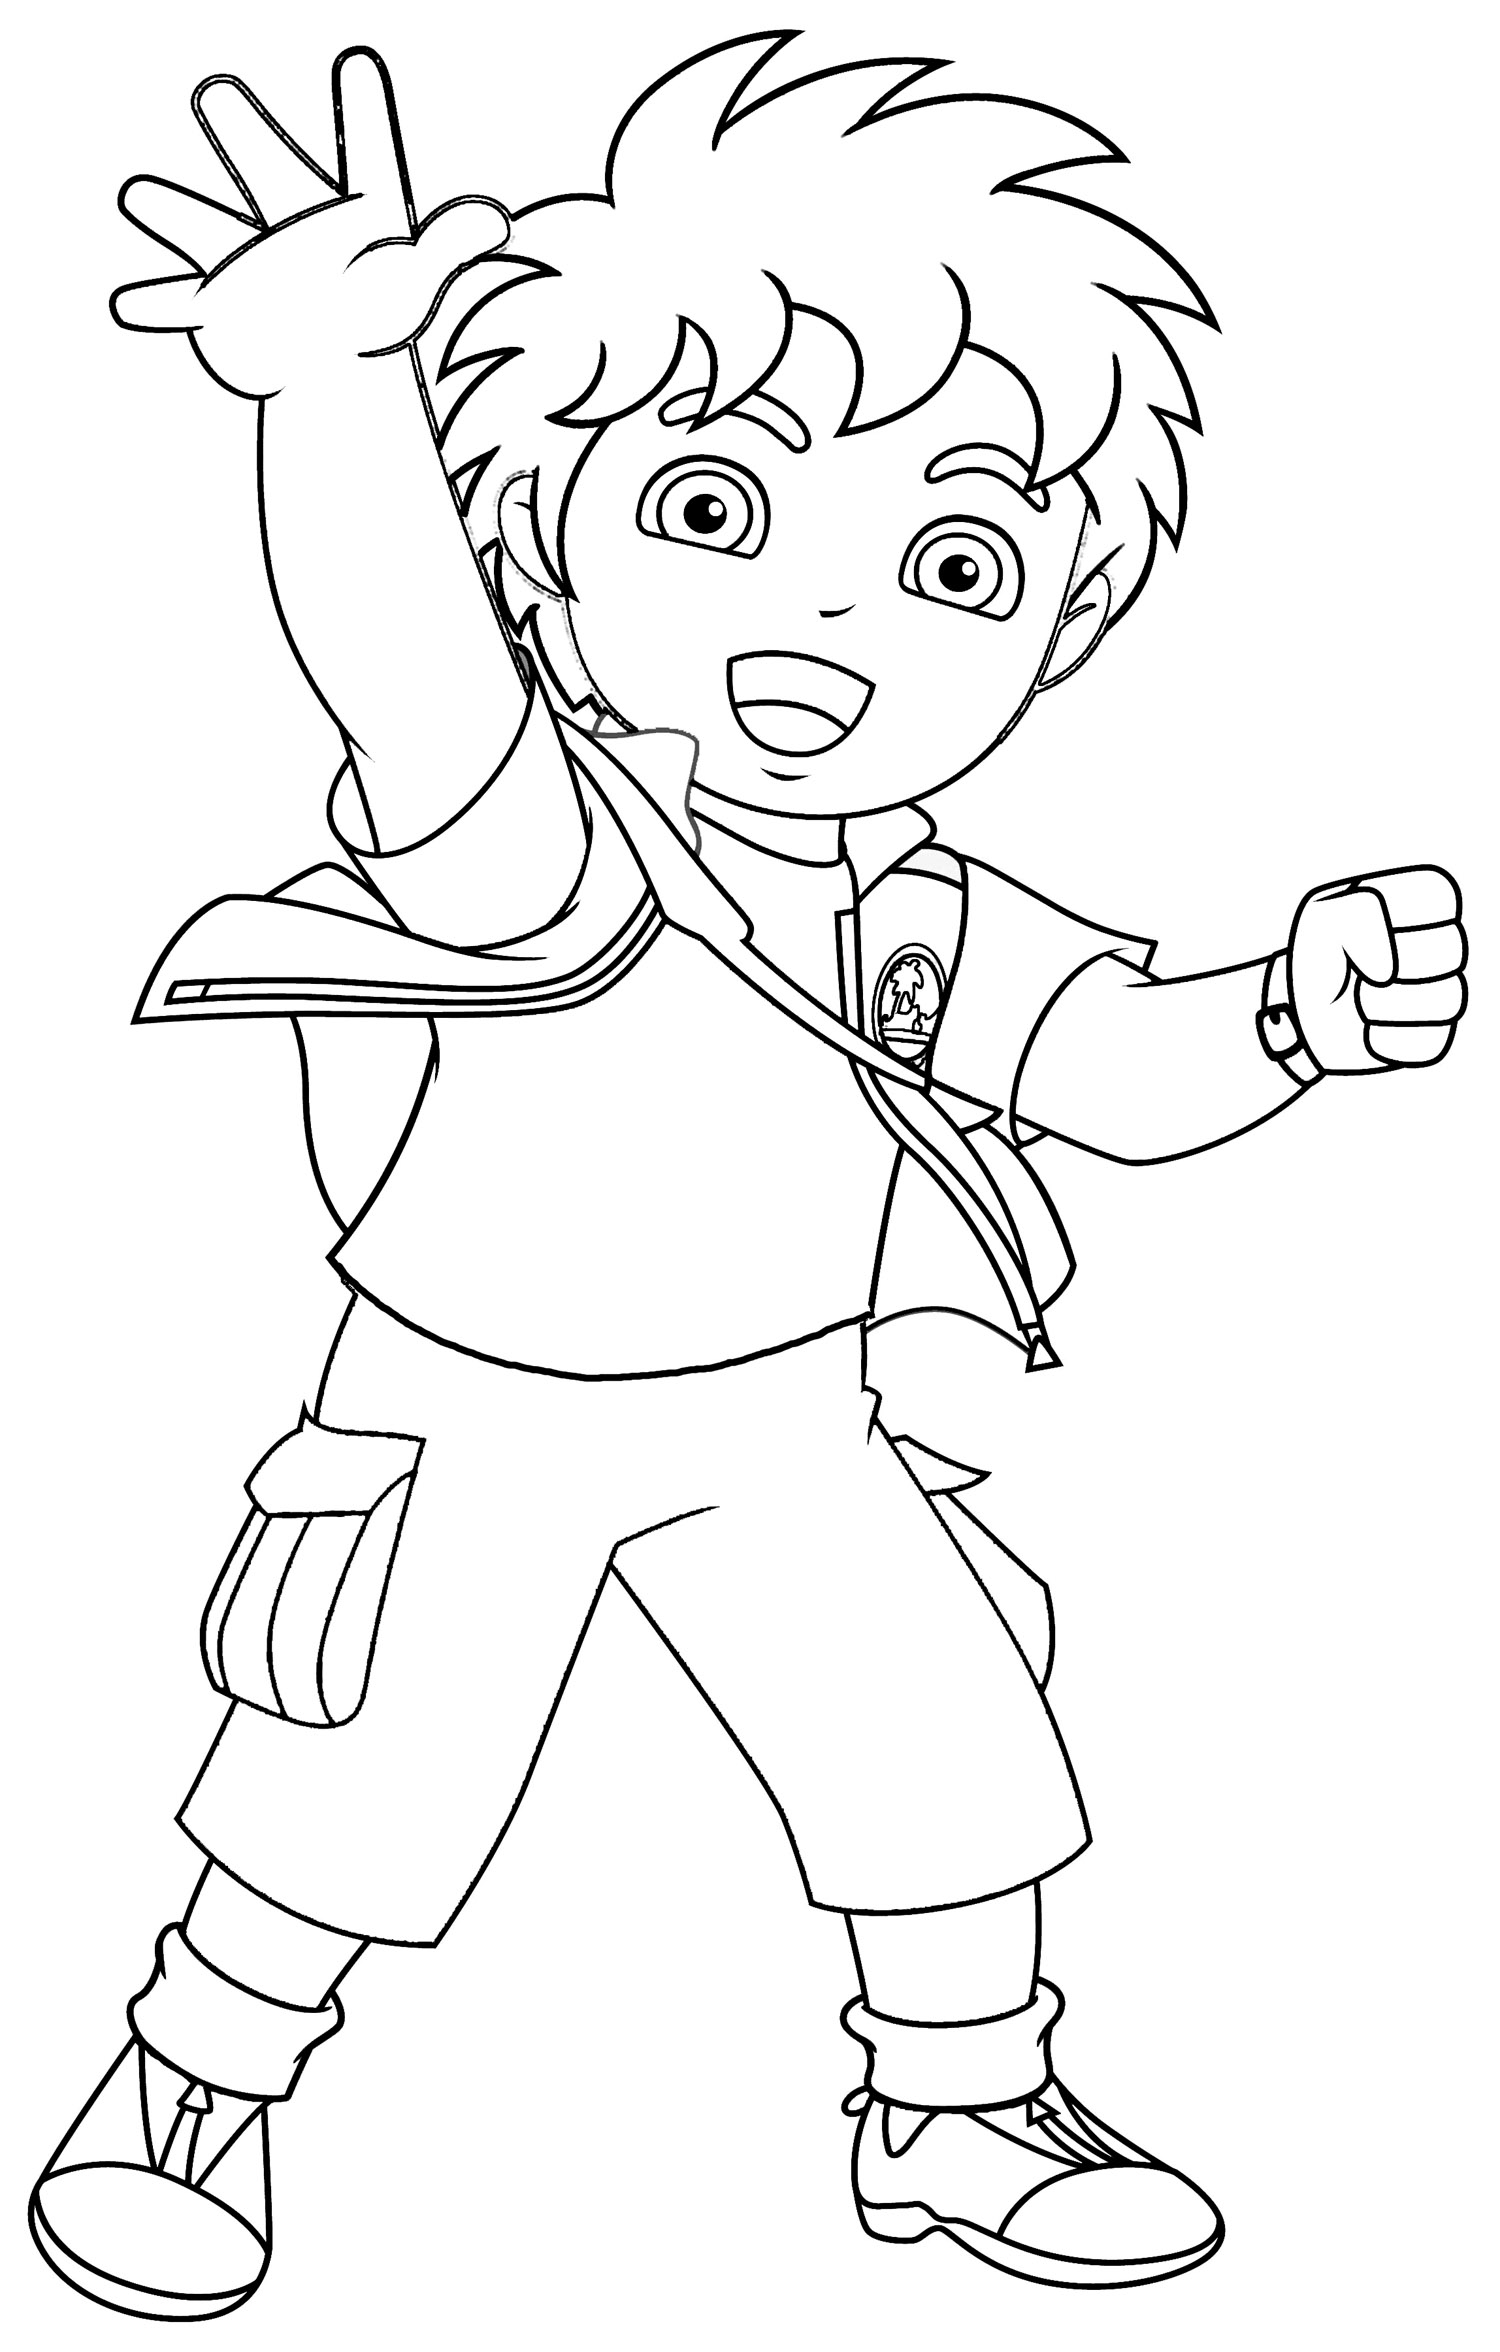 nick coloring pages for boys gave you a better idea of how to